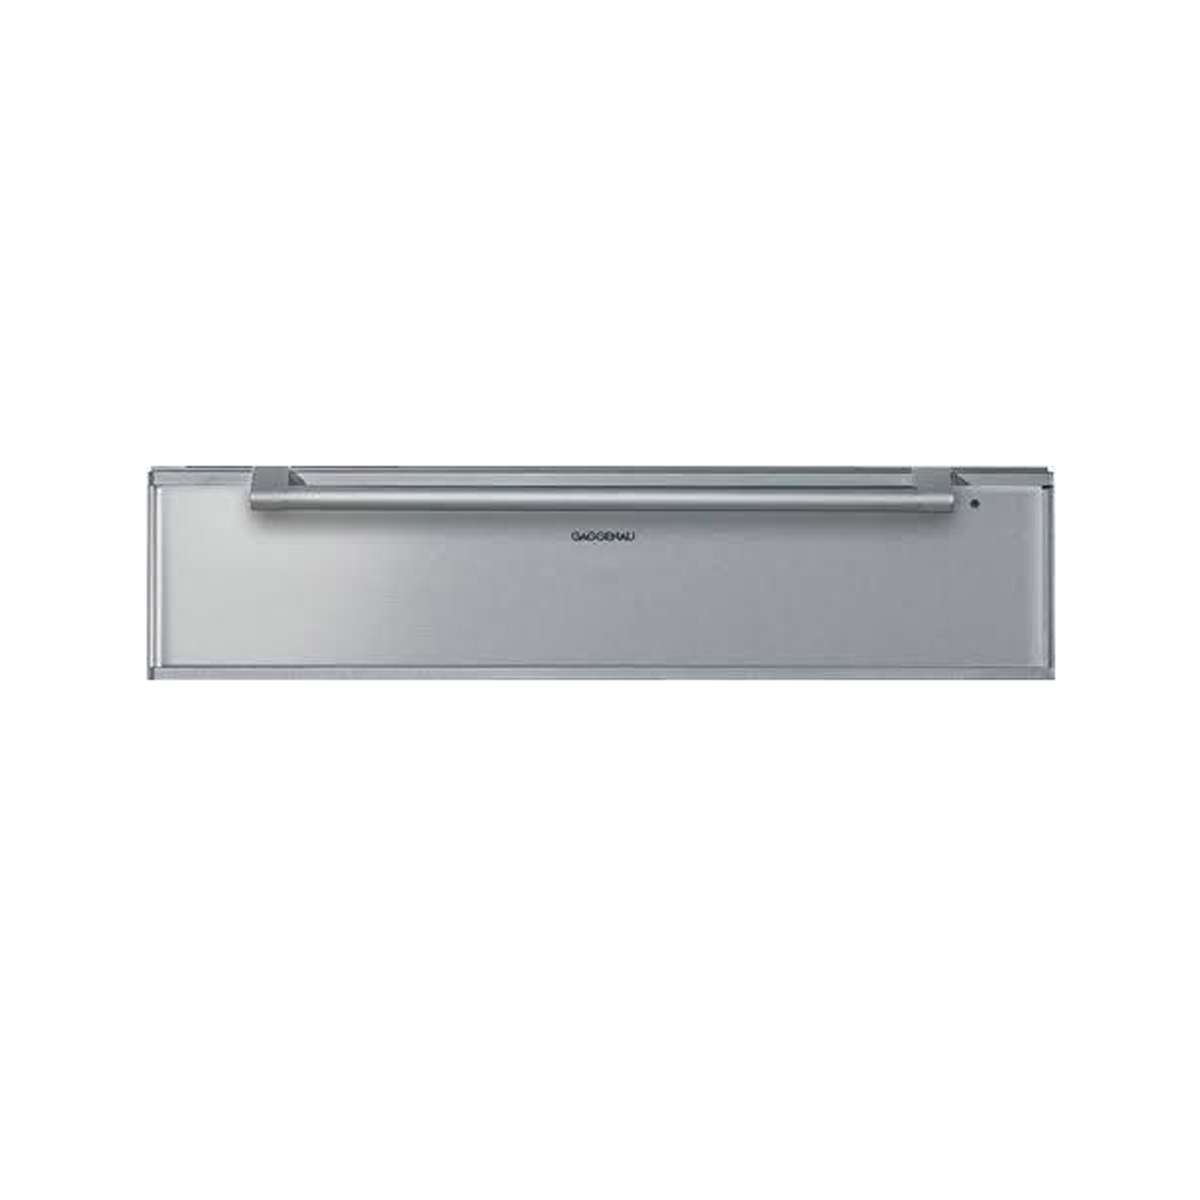 Gaggenau WS261-131 Warming Drawer